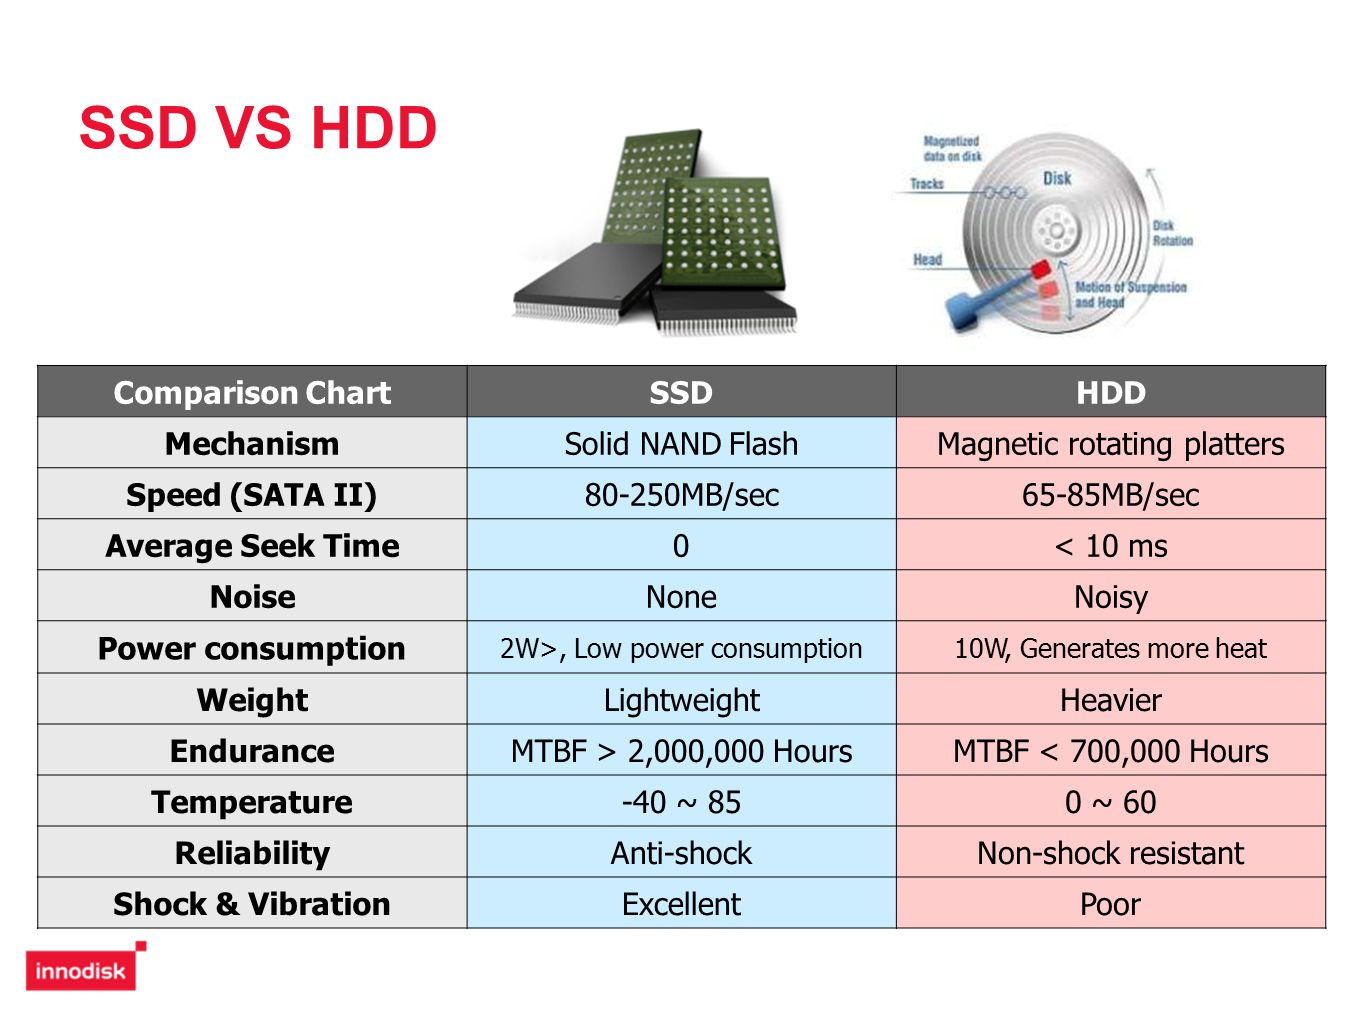 ssd vs hdd Compare ssds head to head to quickly find out which one is better and see key differences, compare ssds from samsung, samsung, adata, crucial, kingston and more ssd boss sort.